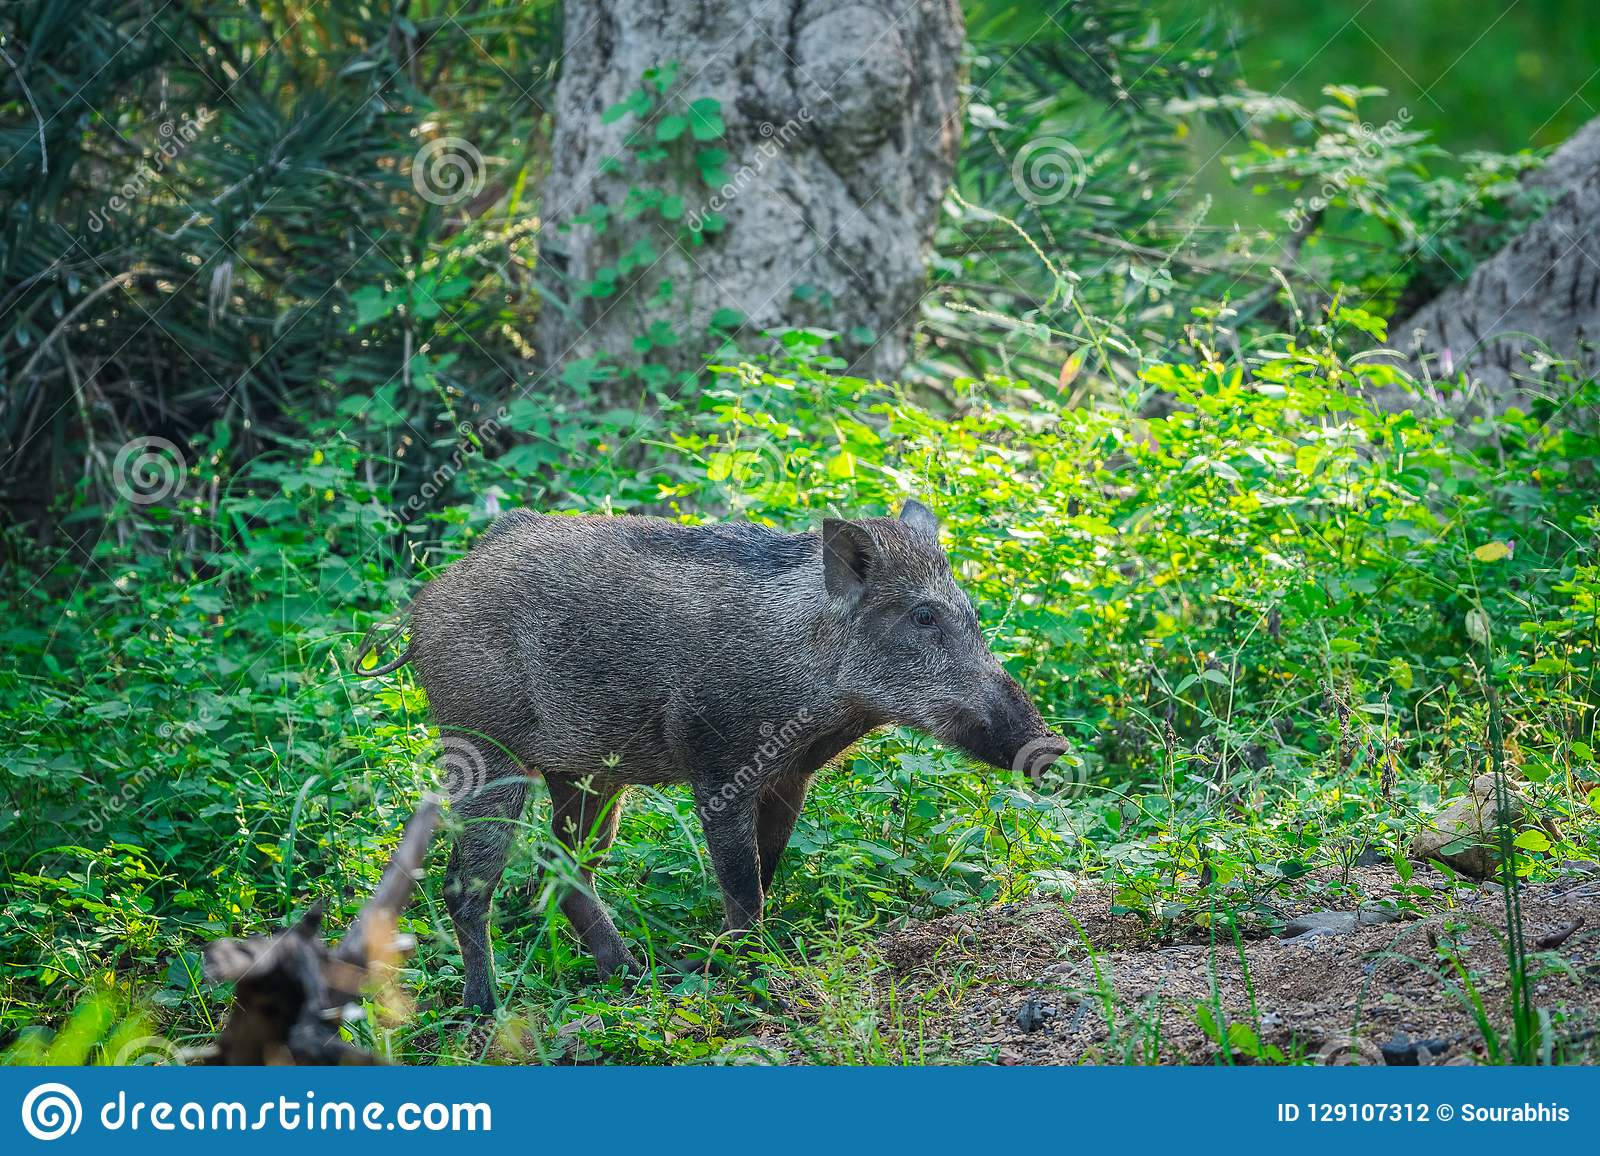 Wild boar roaming in a beautiful green background in a rainy season at Ranthambore National Park, India